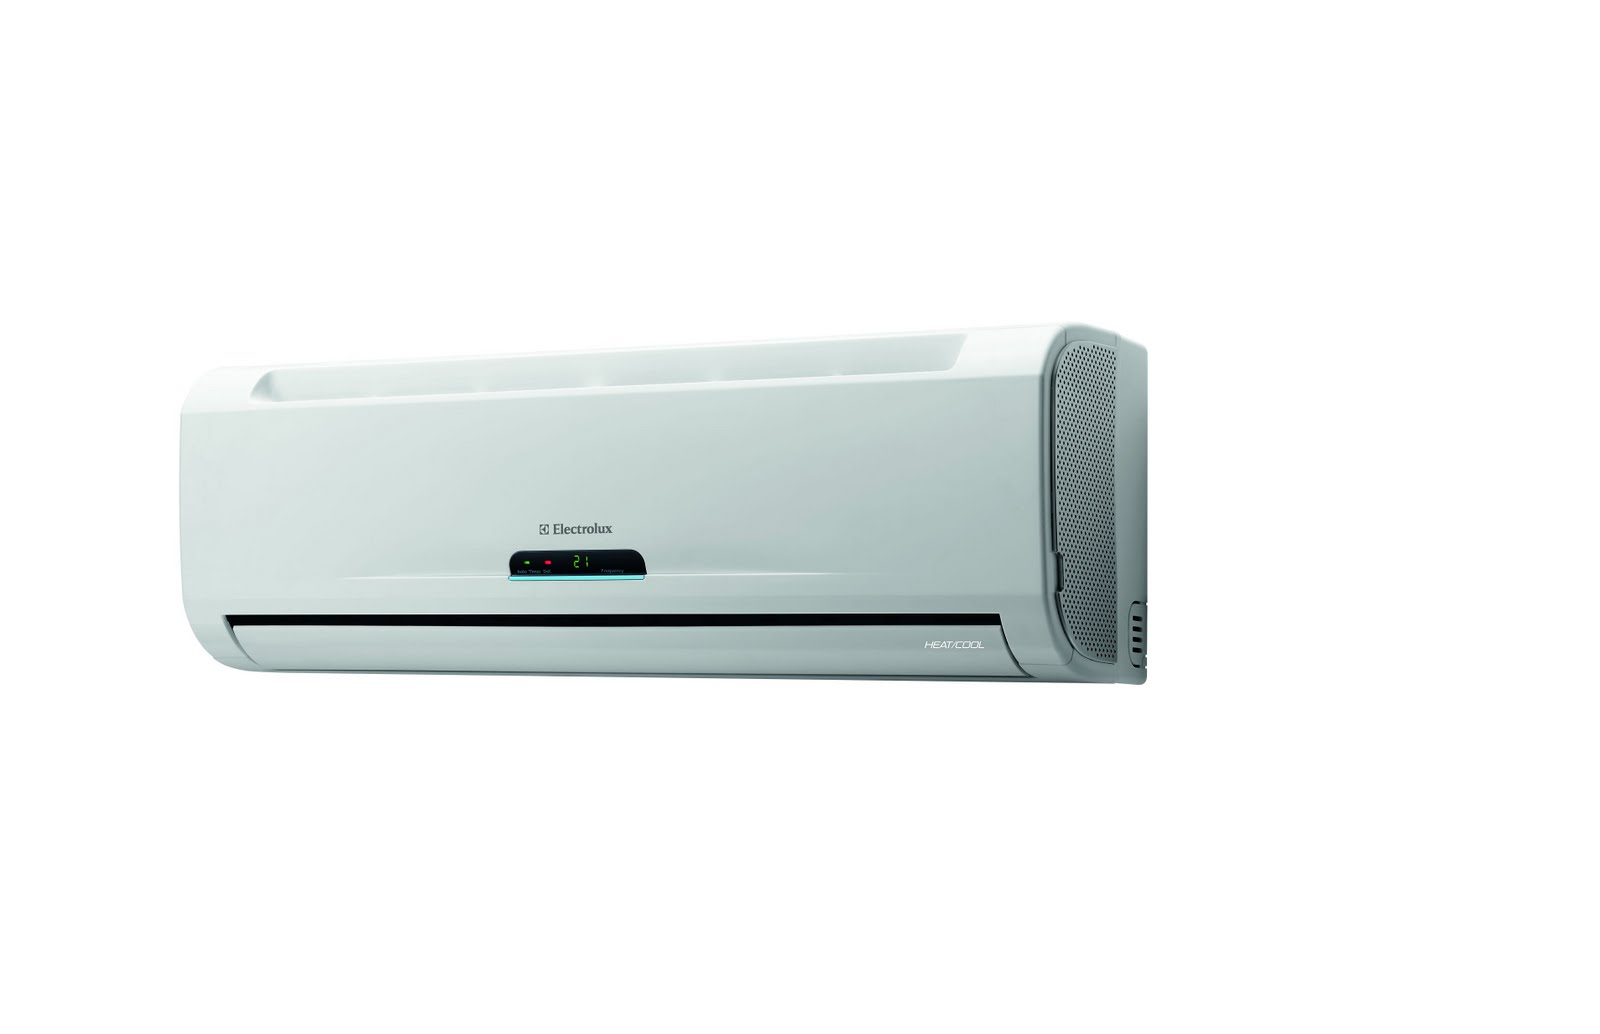 Electrolux split type air conditioner THE WEB MAGAZINE #577474